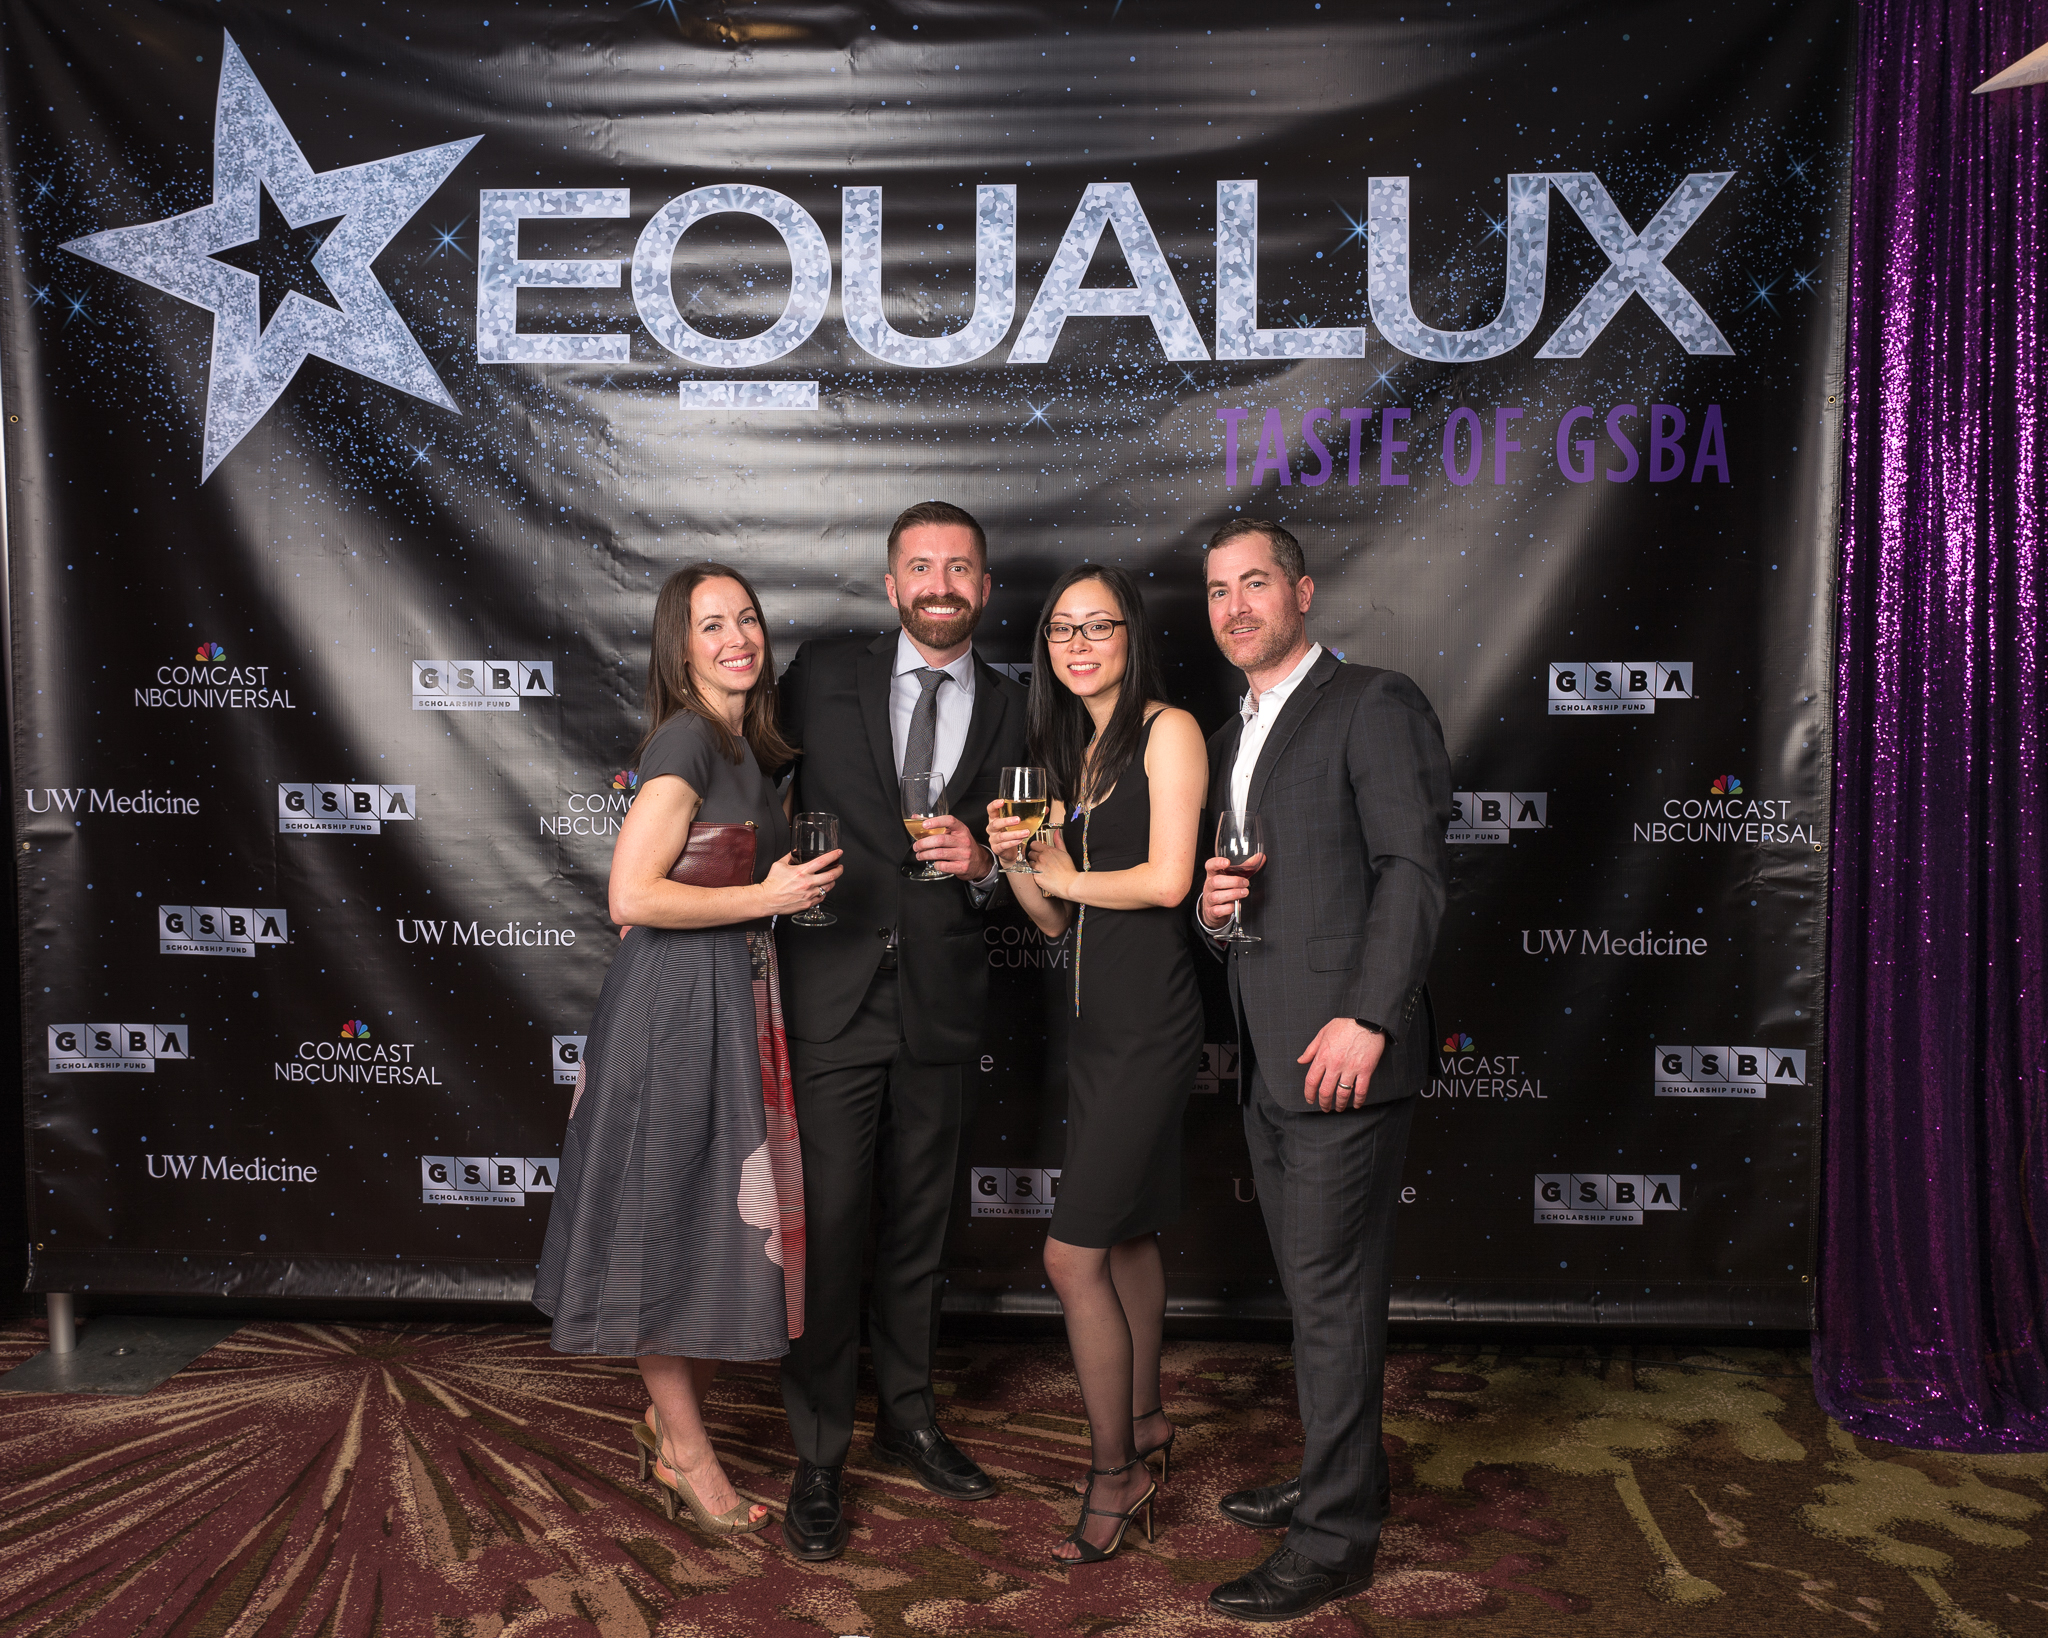 111718_GSBA EQUALUX at The Westin Seattle (Credit- Nate Gowdy)-165.jpg